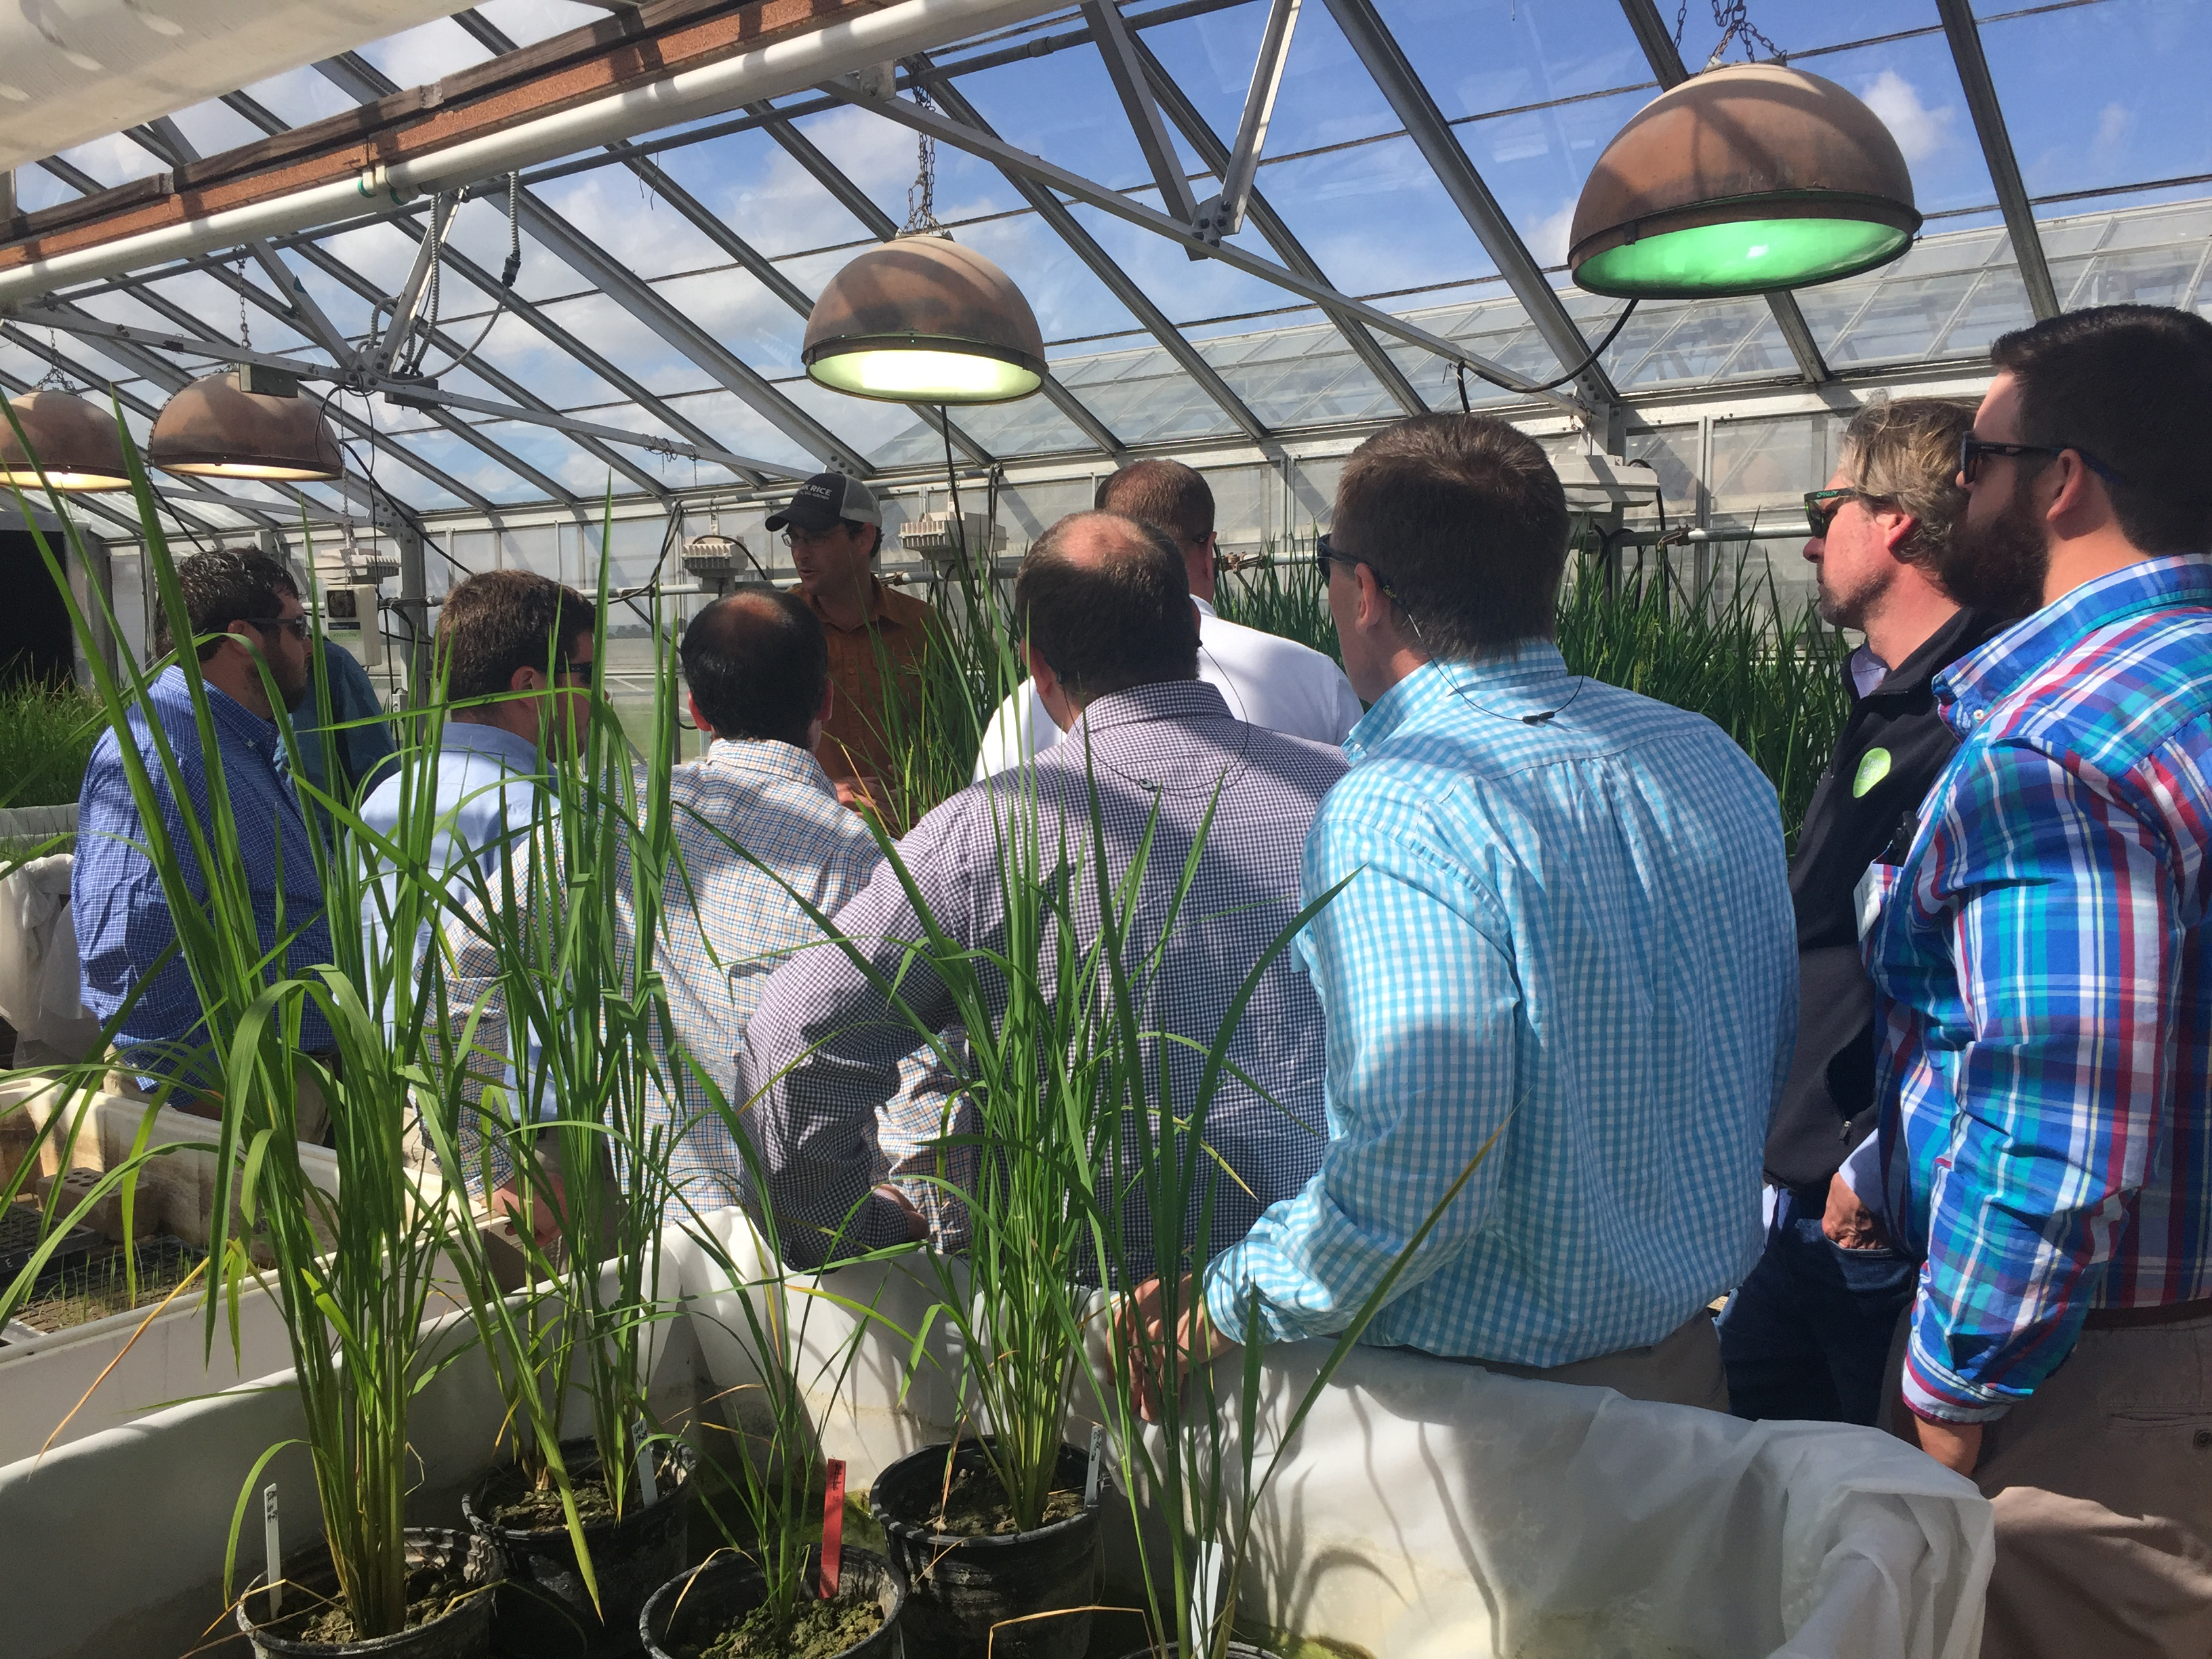 Group of men, backs turned to camera, gather around another man, all standing in a greenhouse with rice plants in individual pots